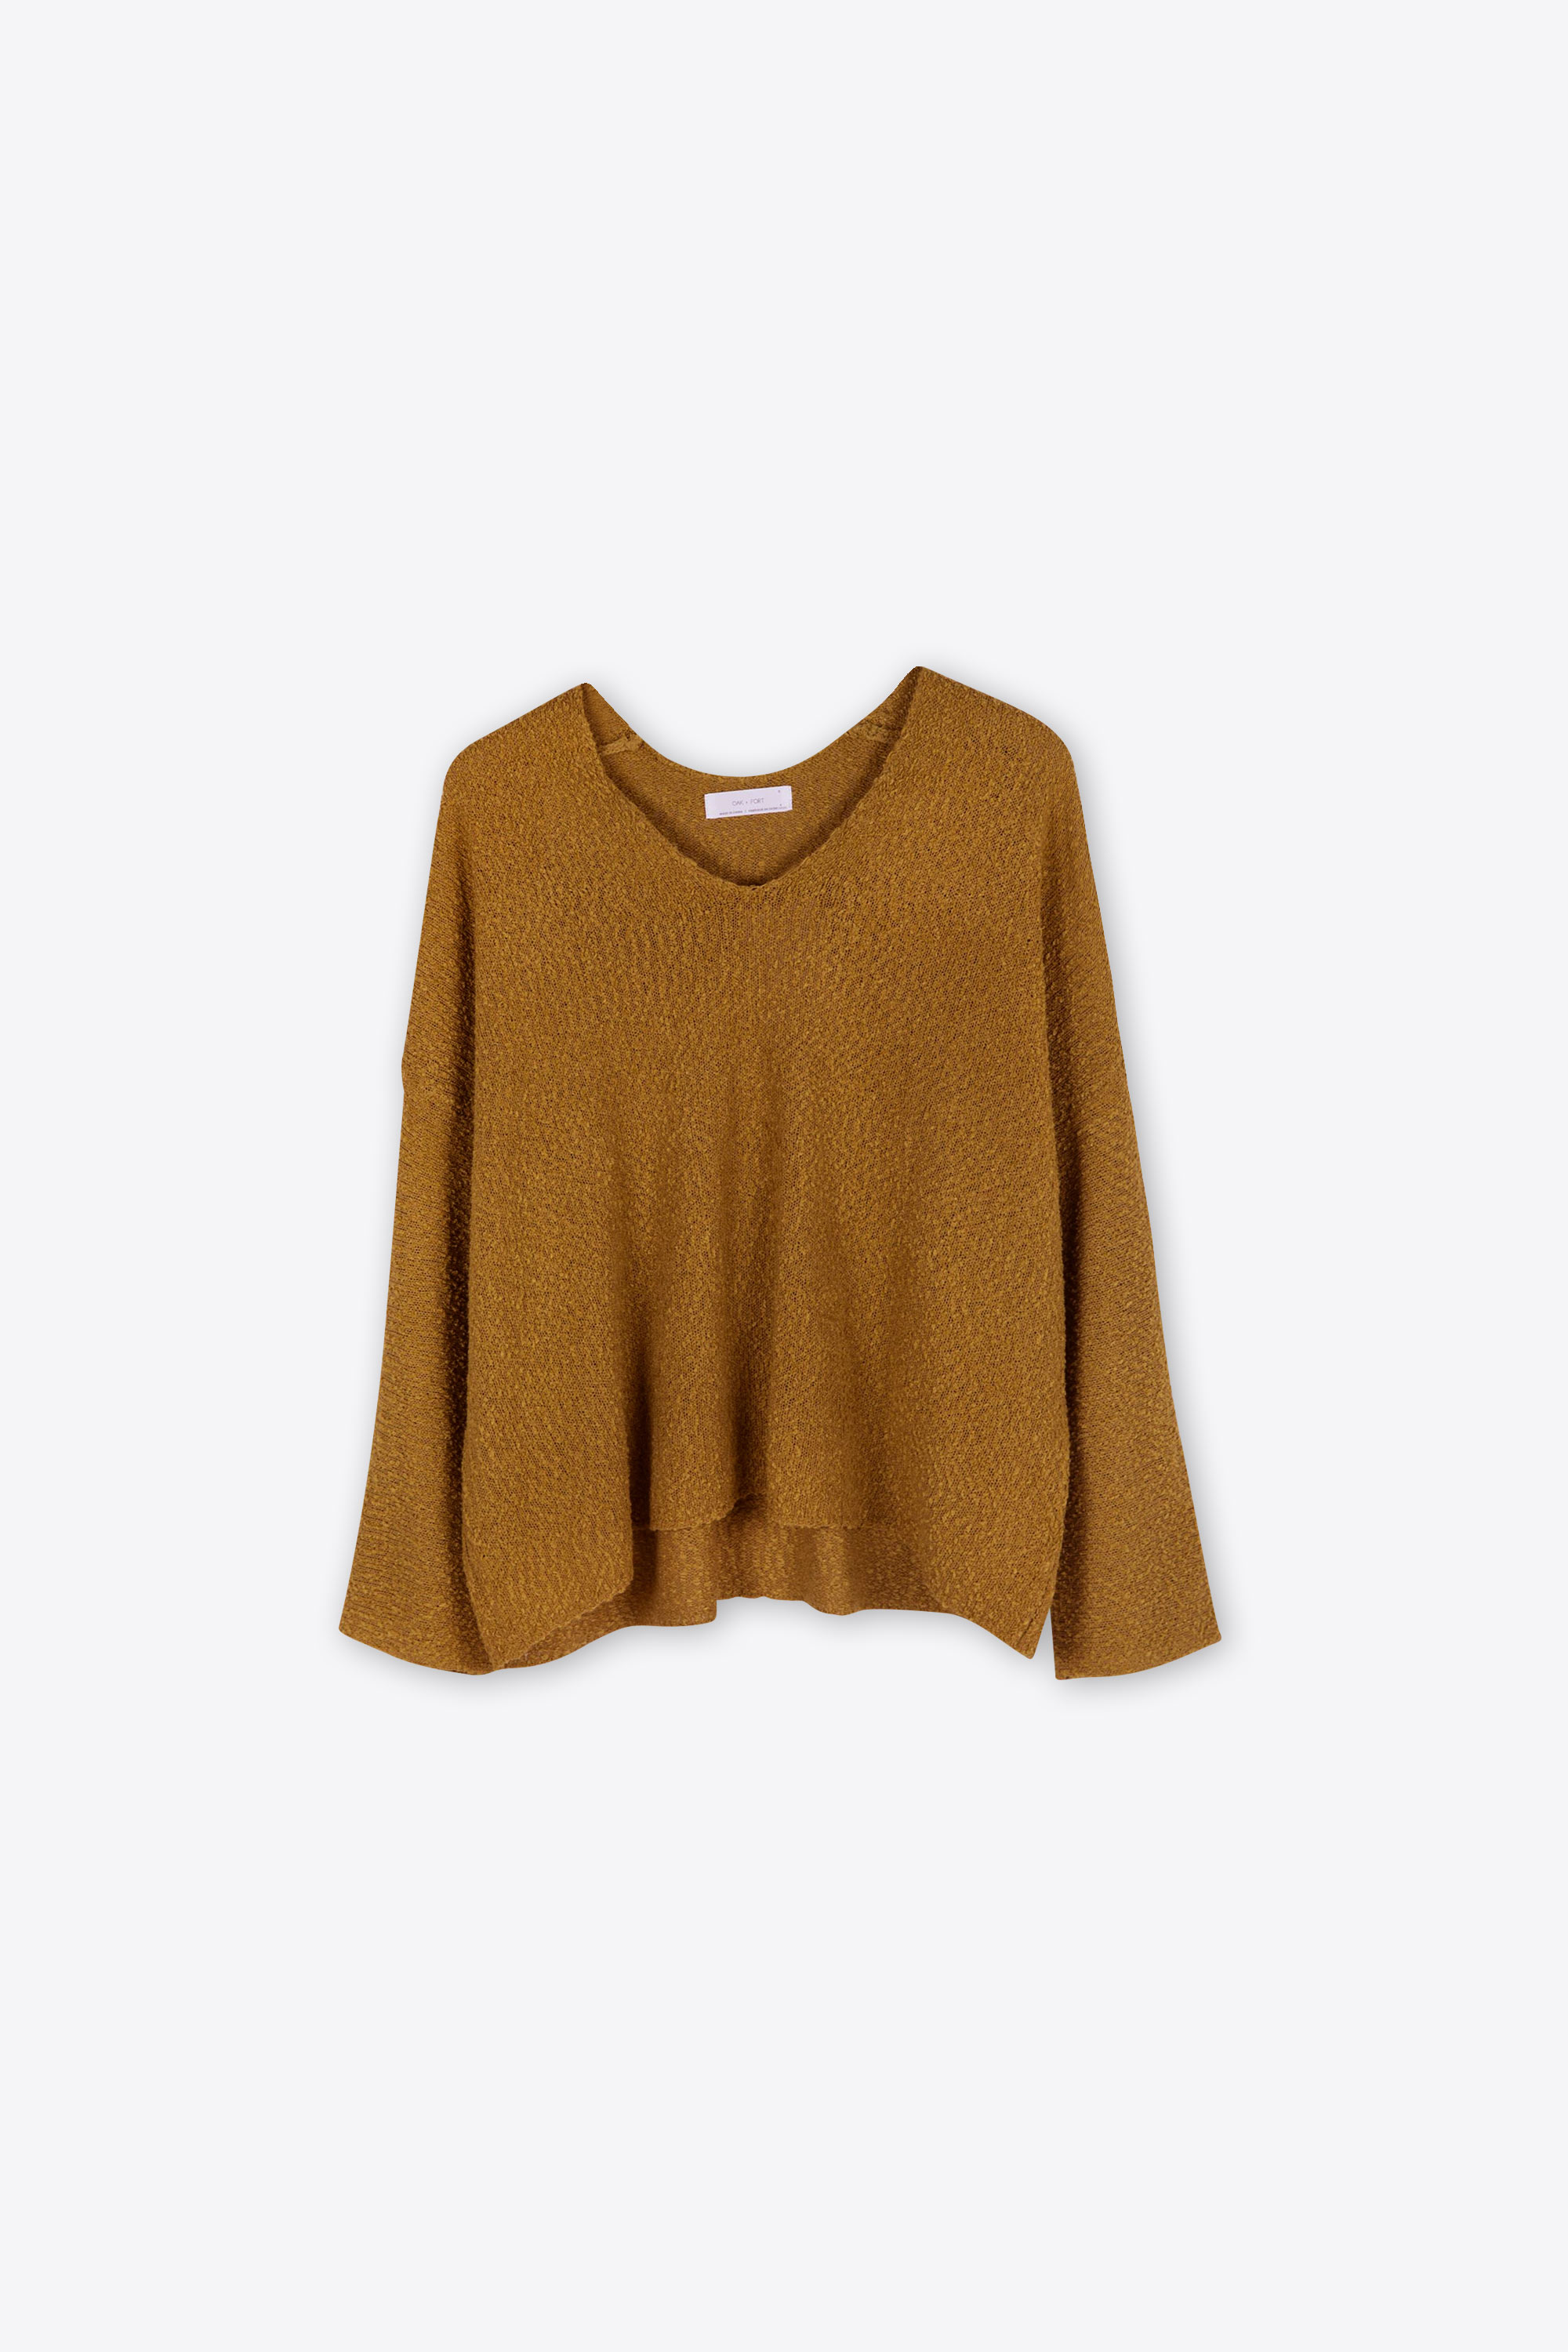 Sweater 2486 Camel 7